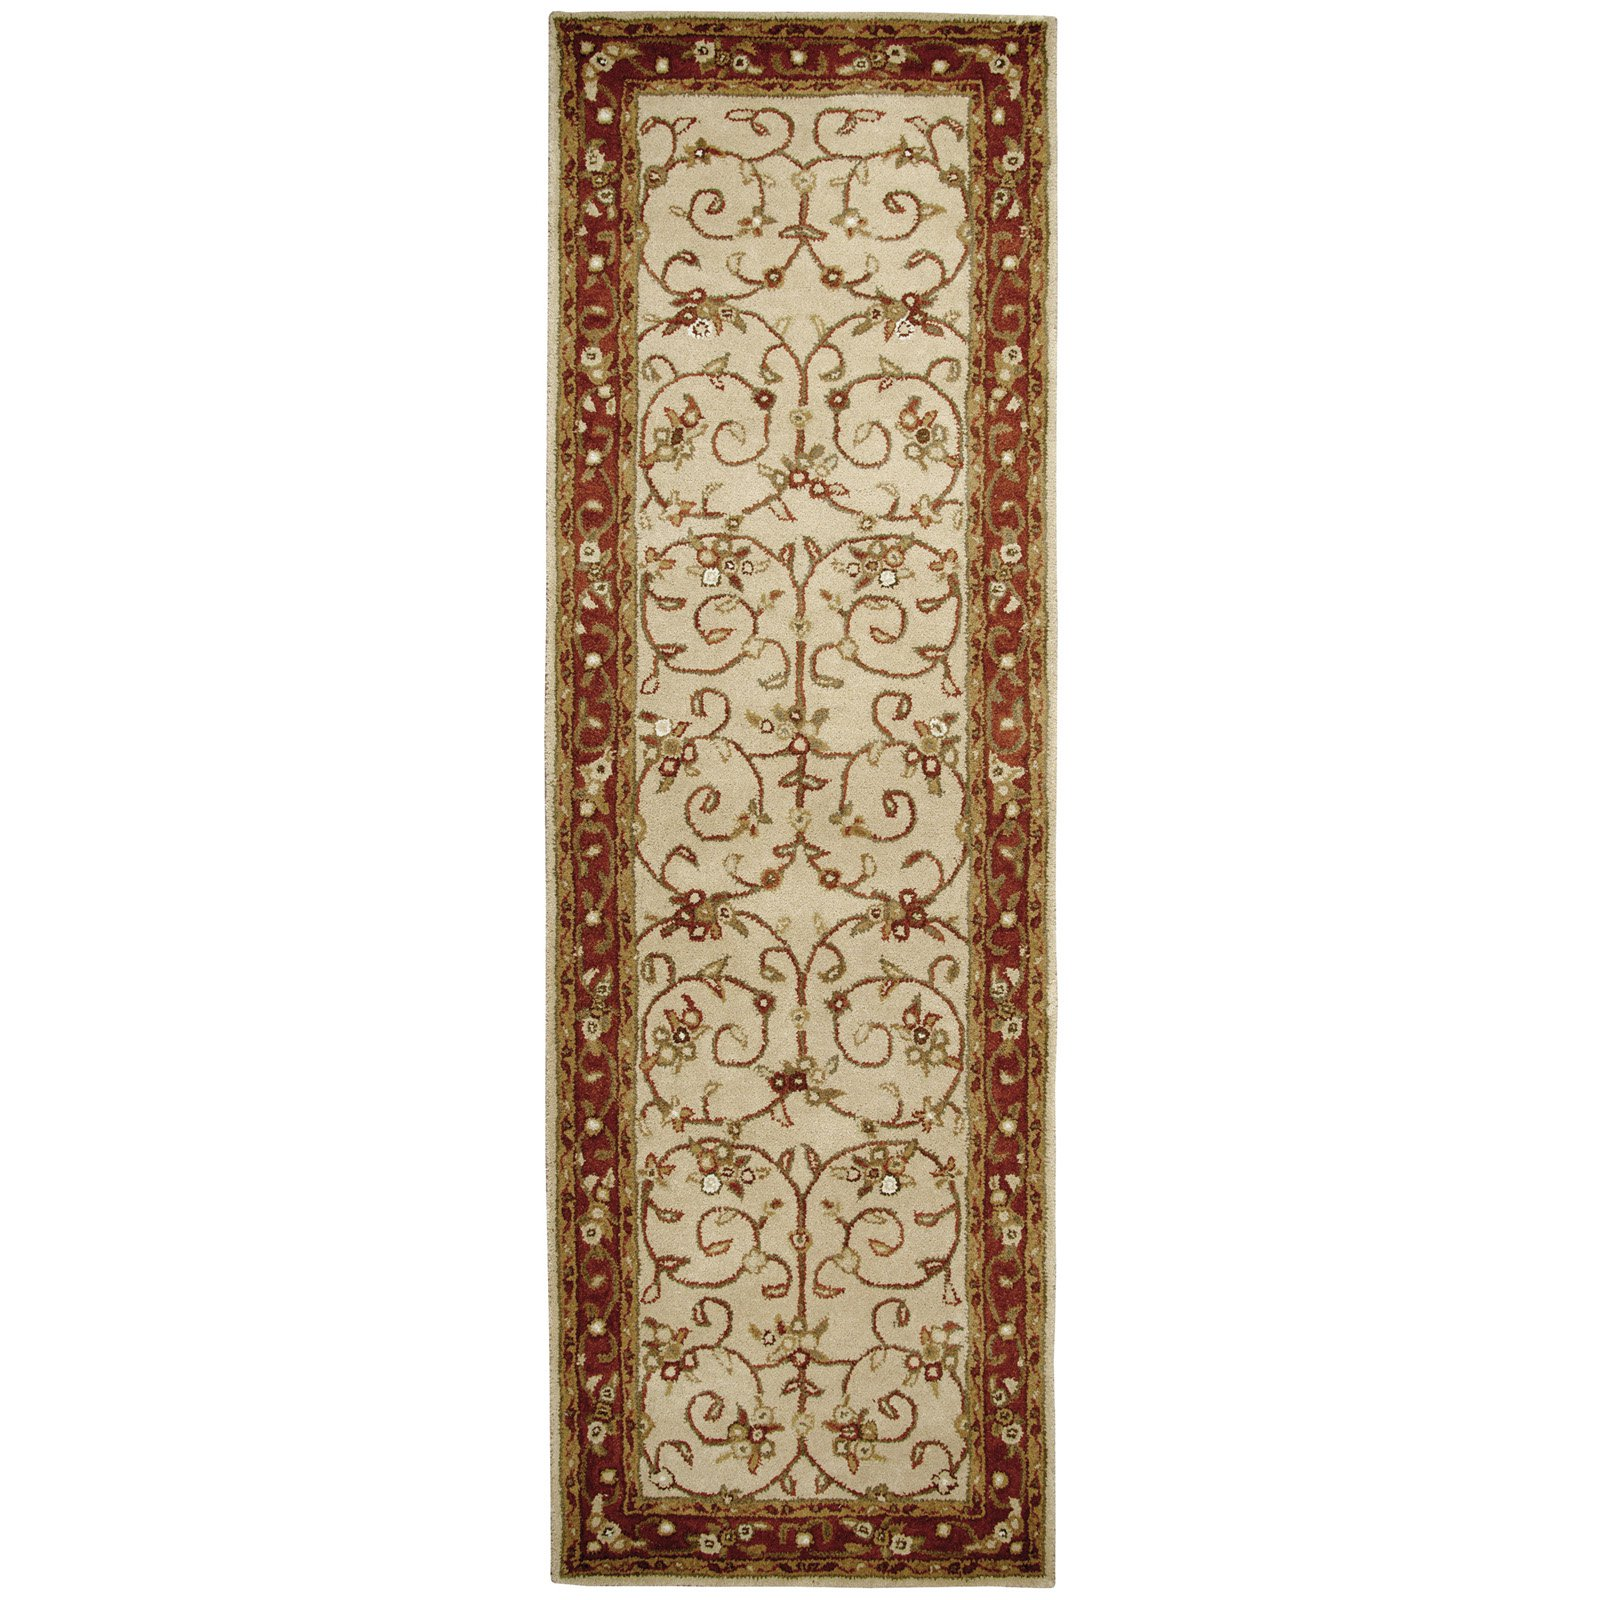 Rizzy Home Volare VO2551 Rug - (2 Foot 6 Inch x 8 Foot)